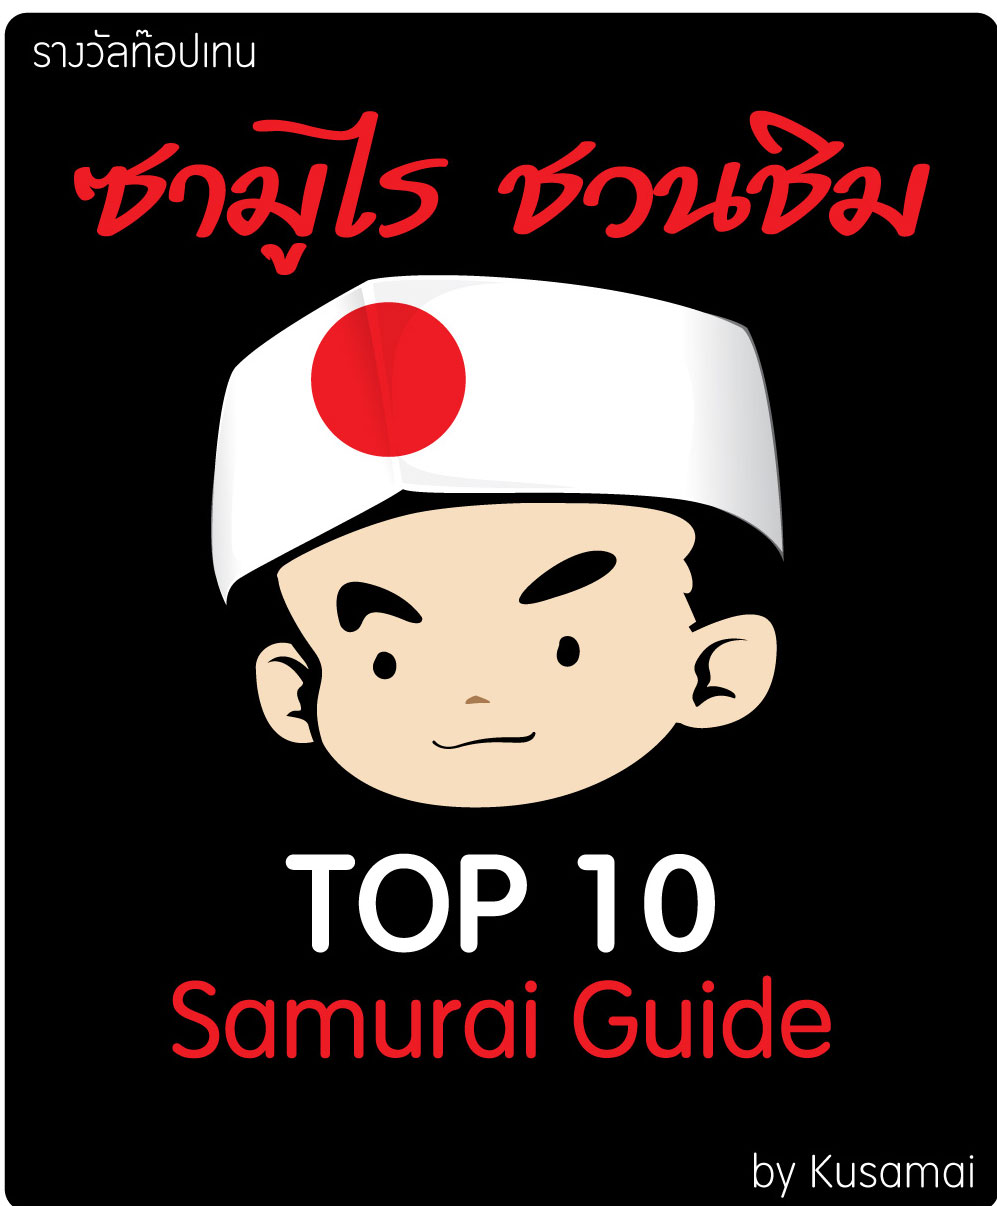 Samurai Guide